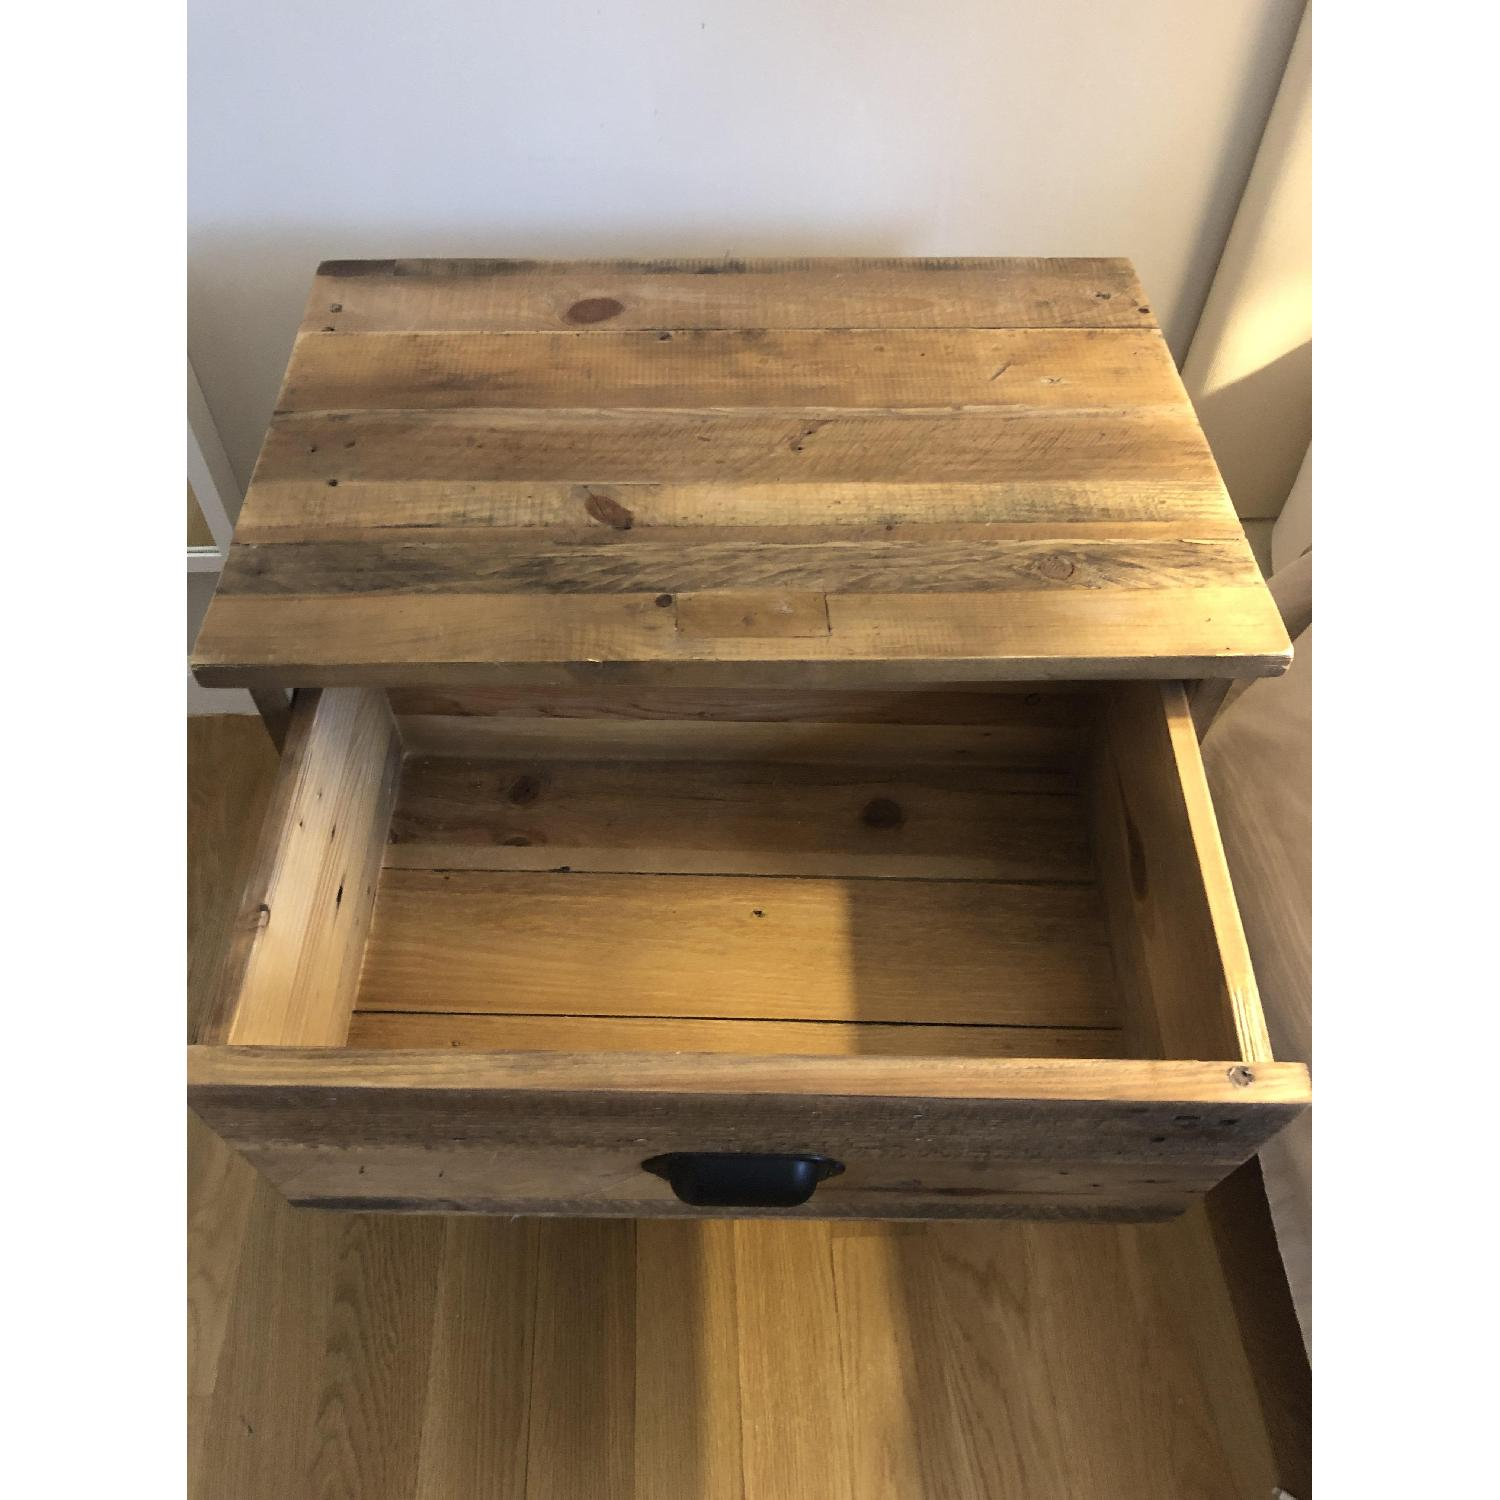 West Elm Emmerson Reclaimed Wood 2-Drawer Nightstand - image-4